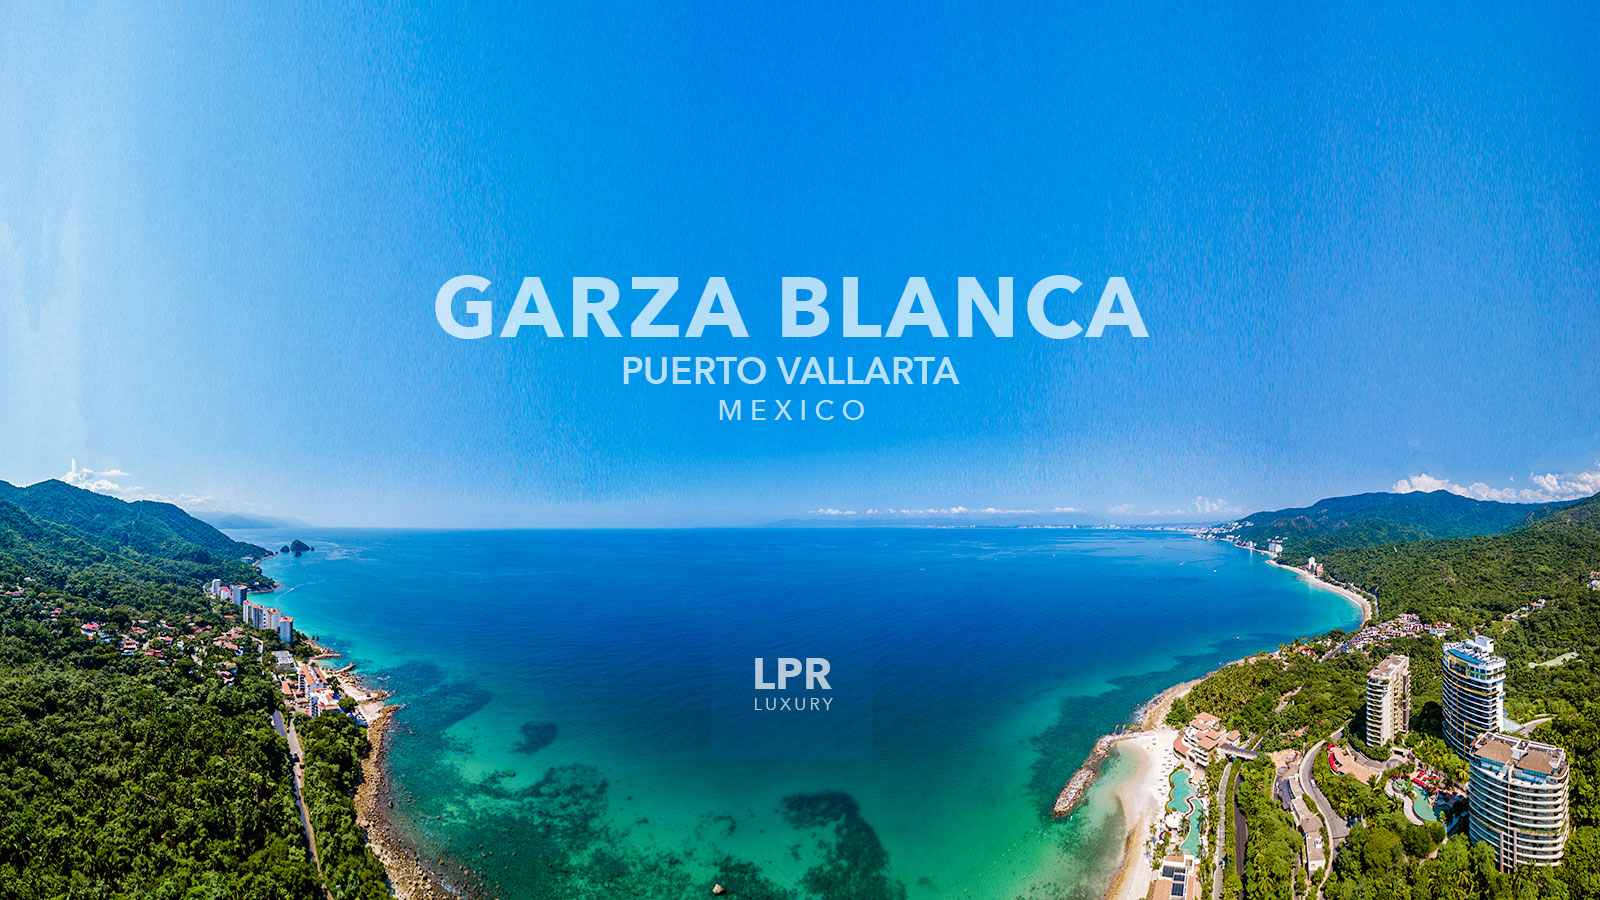 Garza Blanca - South Shore Puerto Vallarta Luxury Condominiums For Sale and Rent